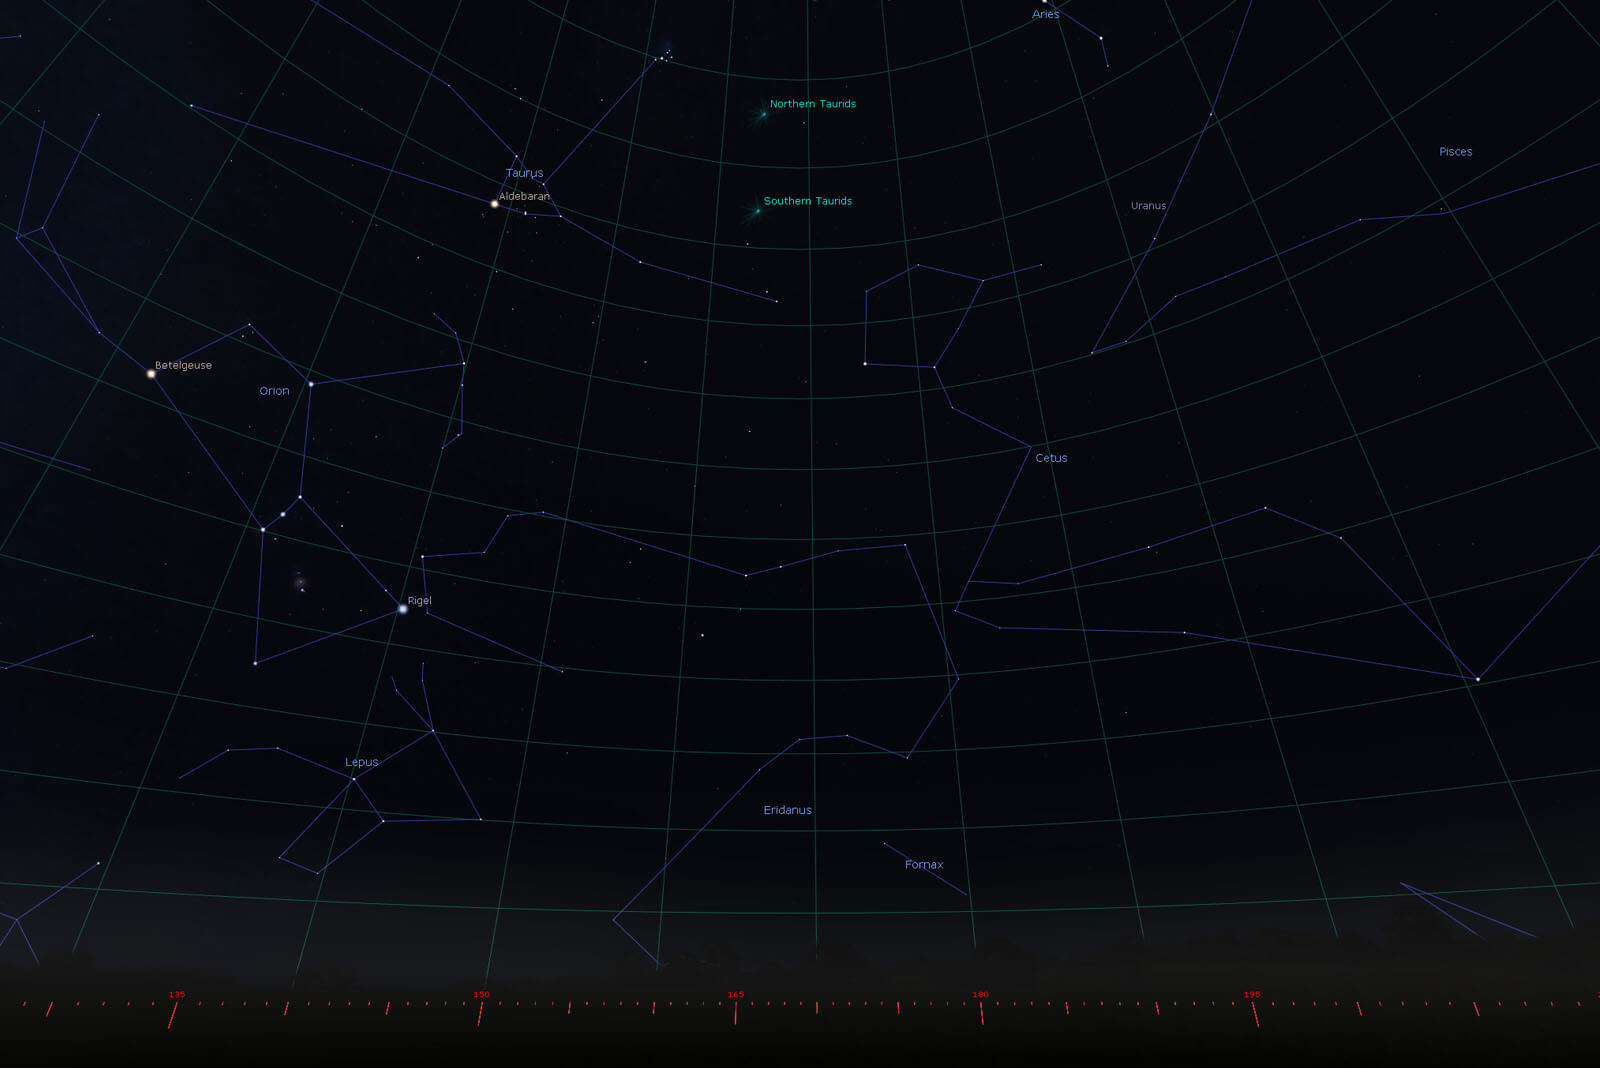 The Taurids Meteor Shower 5th Nov 2018